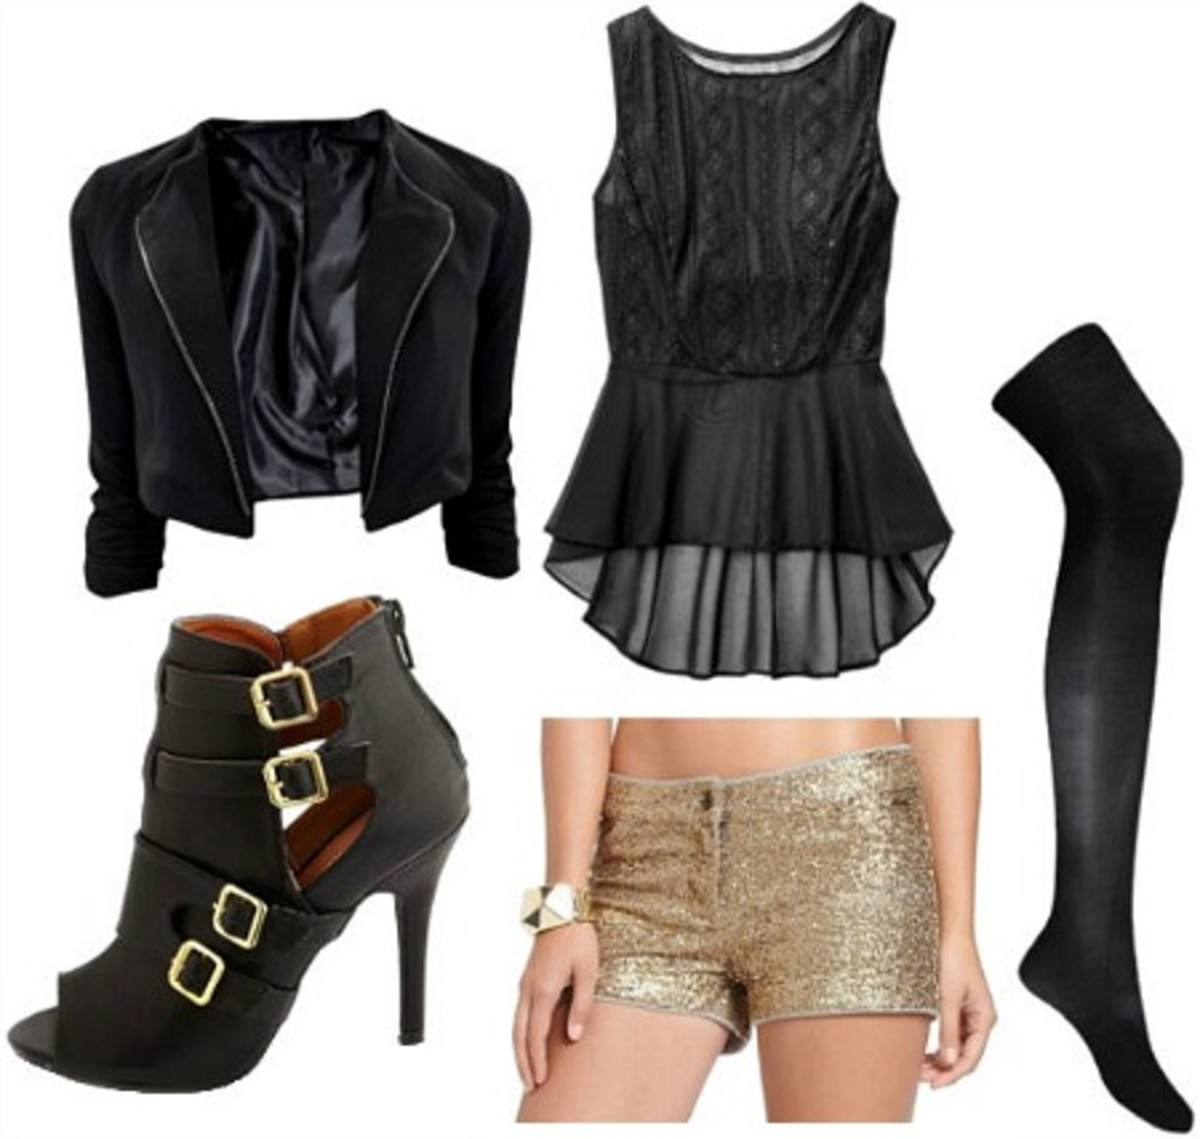 tan-shorts-gold-sequin-black-top-peplum-black-tights-black-shoe-booties-black-jacket-blazer-fall-winter-nye-dinner.jpg